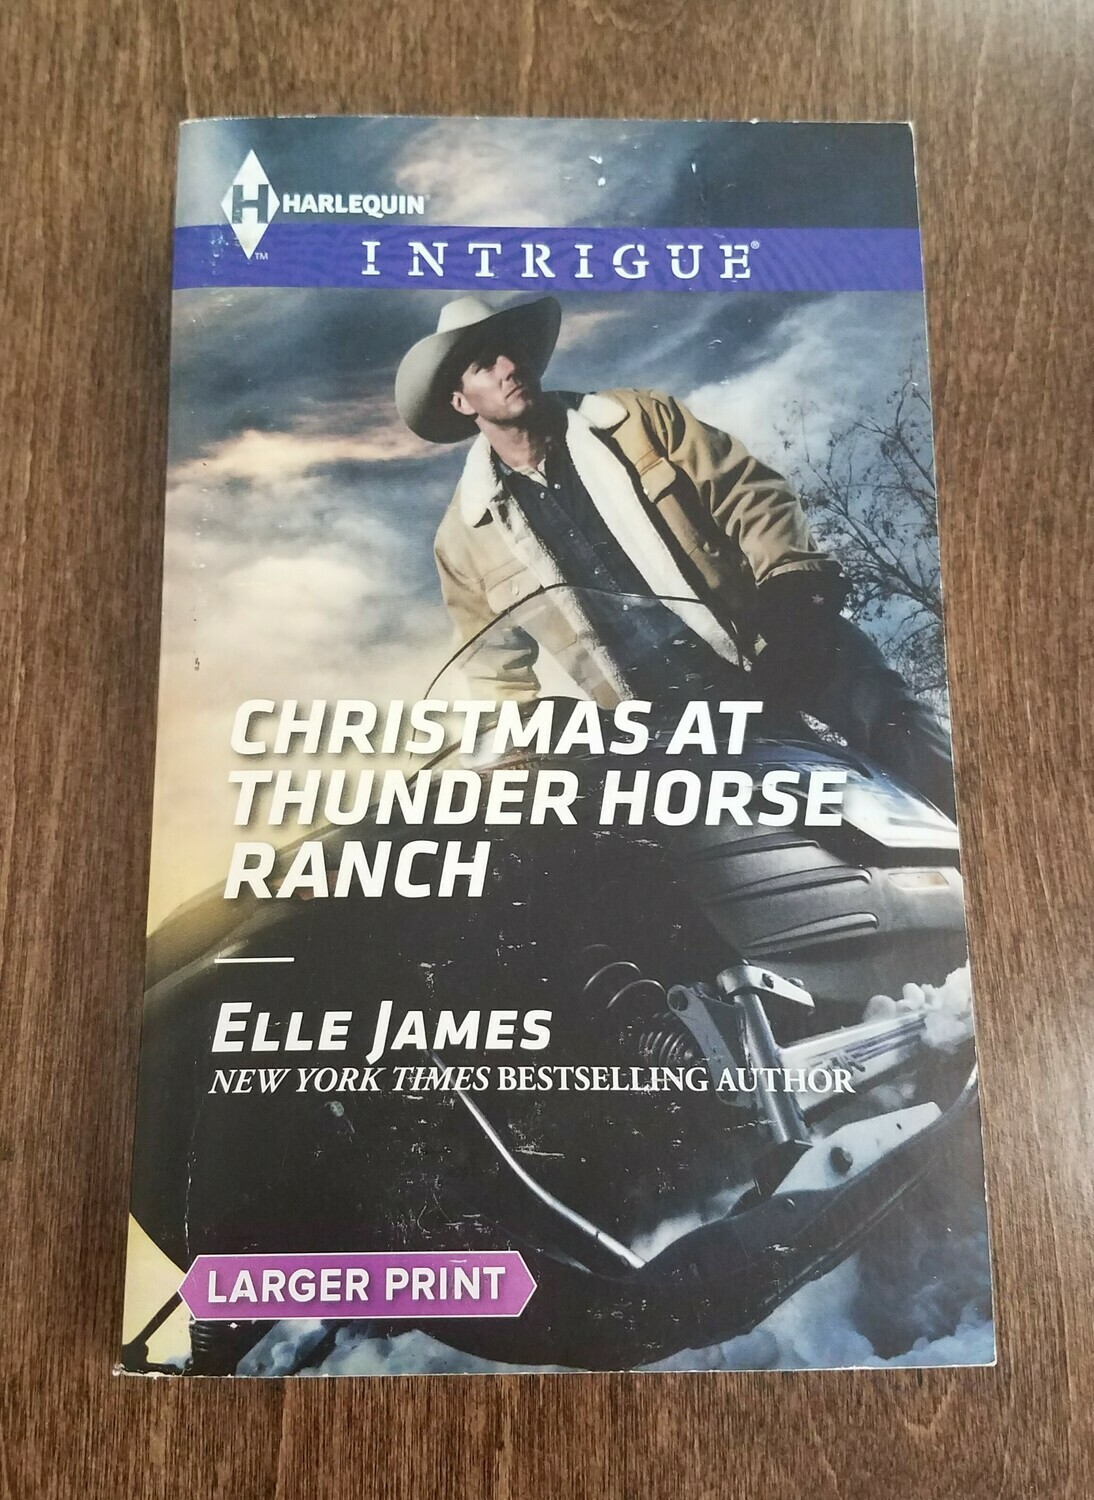 Christmas at Thunder Horse Ranch by Elle James